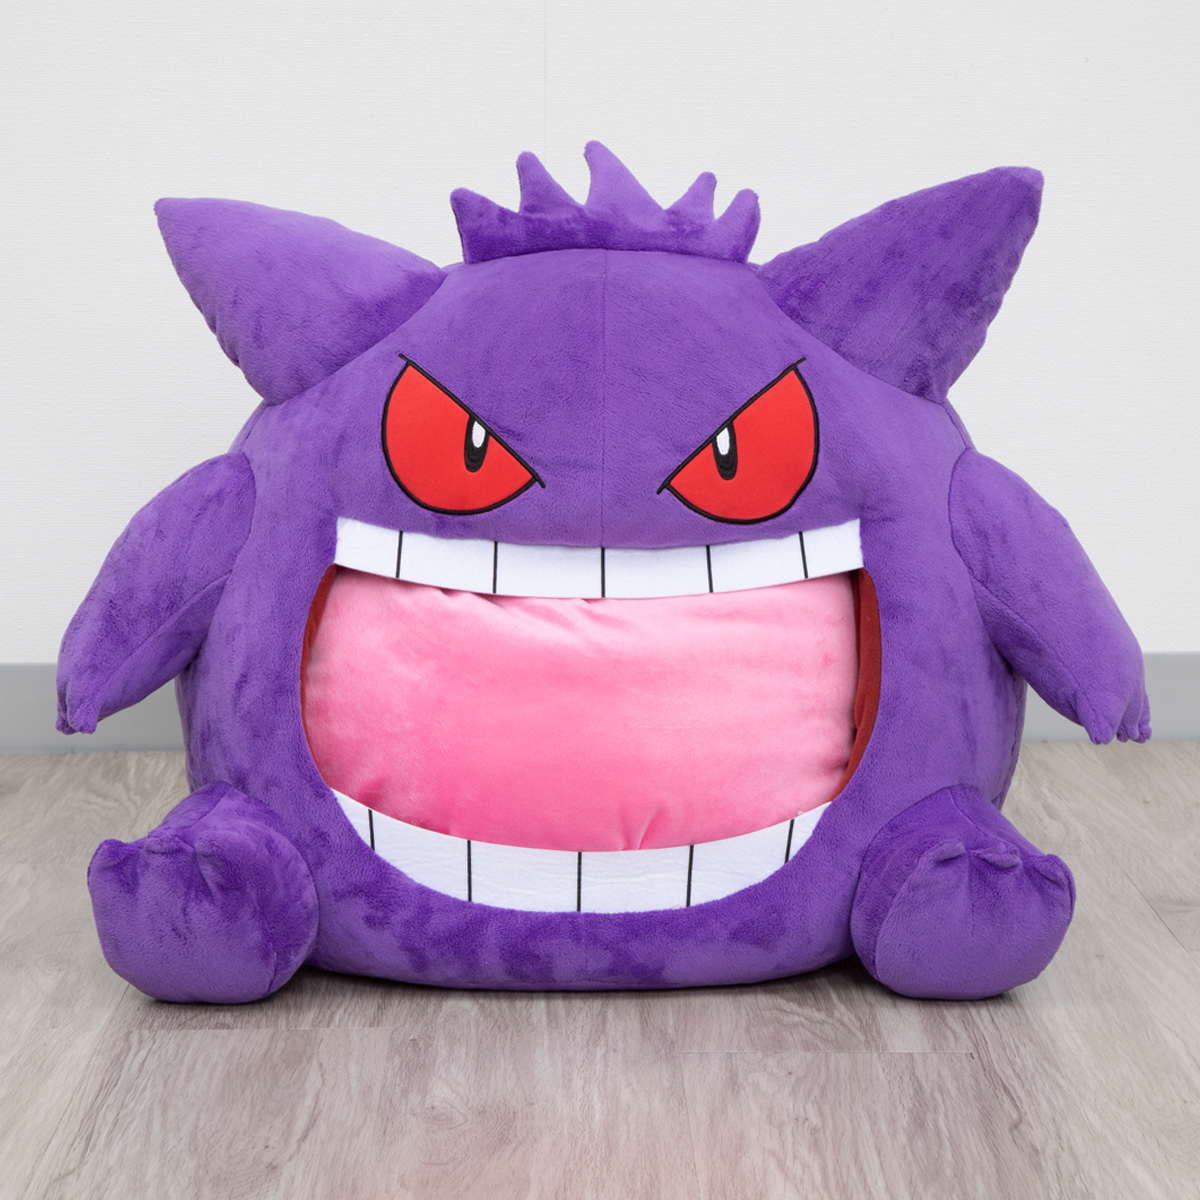 ABSOLUTELY WANNA LICKED BY GENGAR